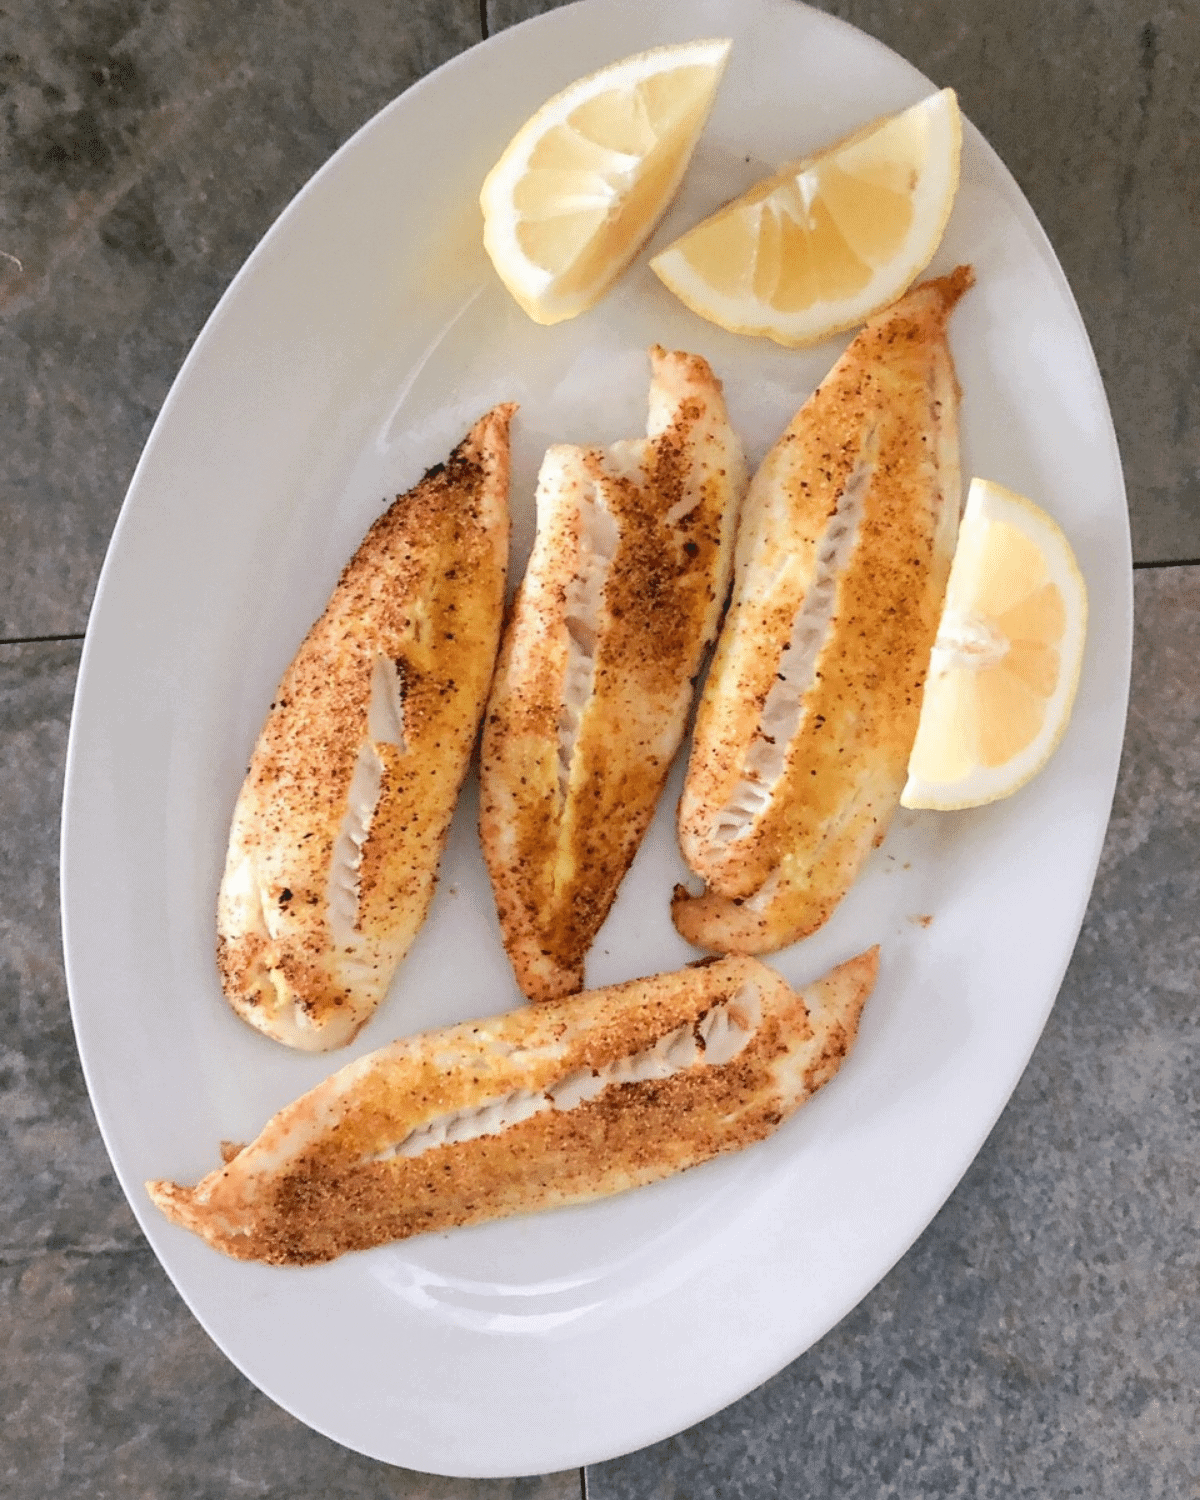 Tilapia fish, not breaded, cooked in the air fryer and served on a white plate with slices of fresh lemon